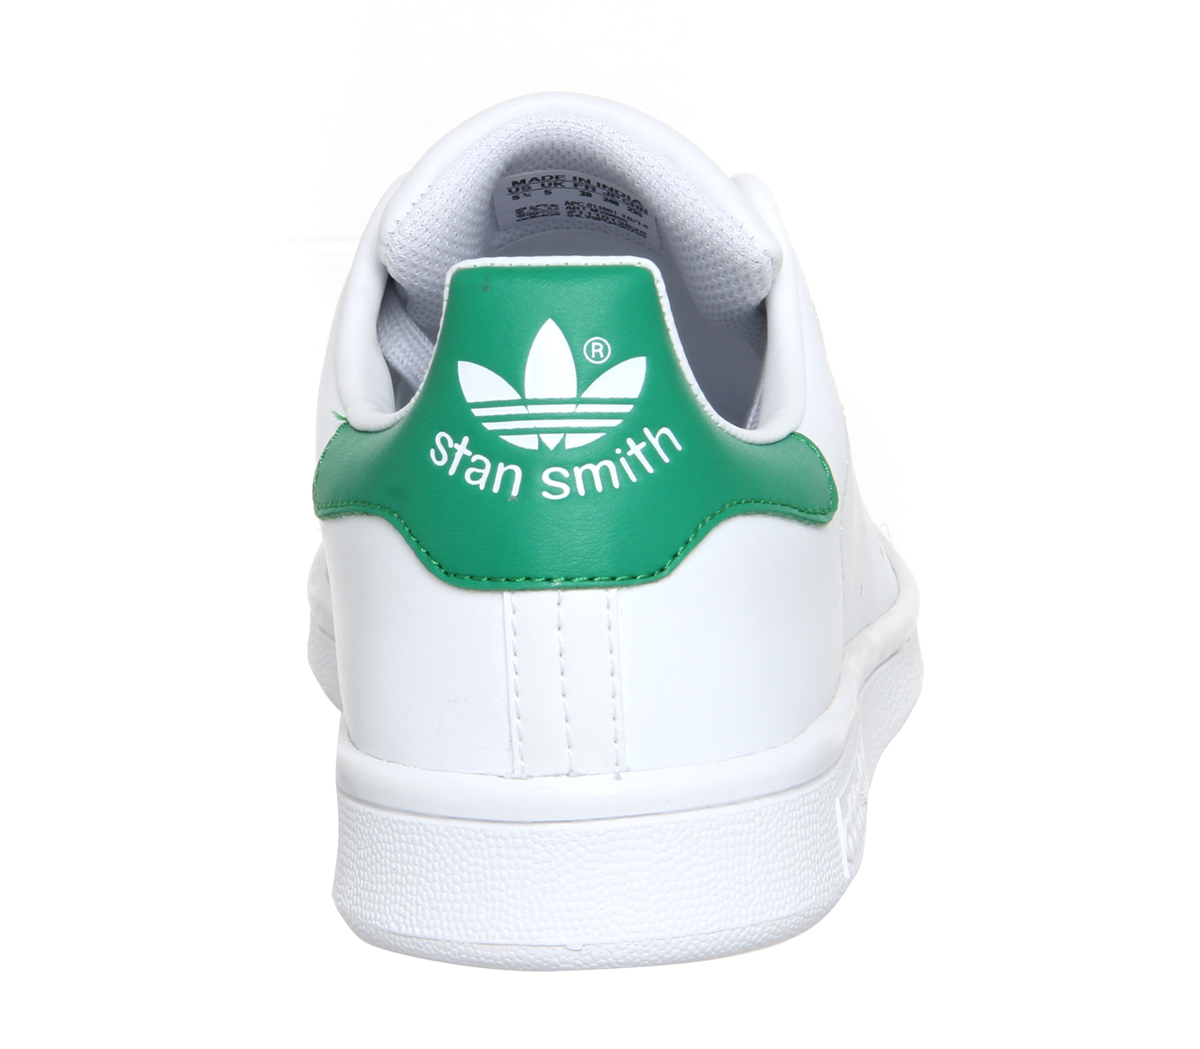 Mens-Adidas-Stan-Smith-Trainers-Core-White-Green-Trainers-Shoes thumbnail 37